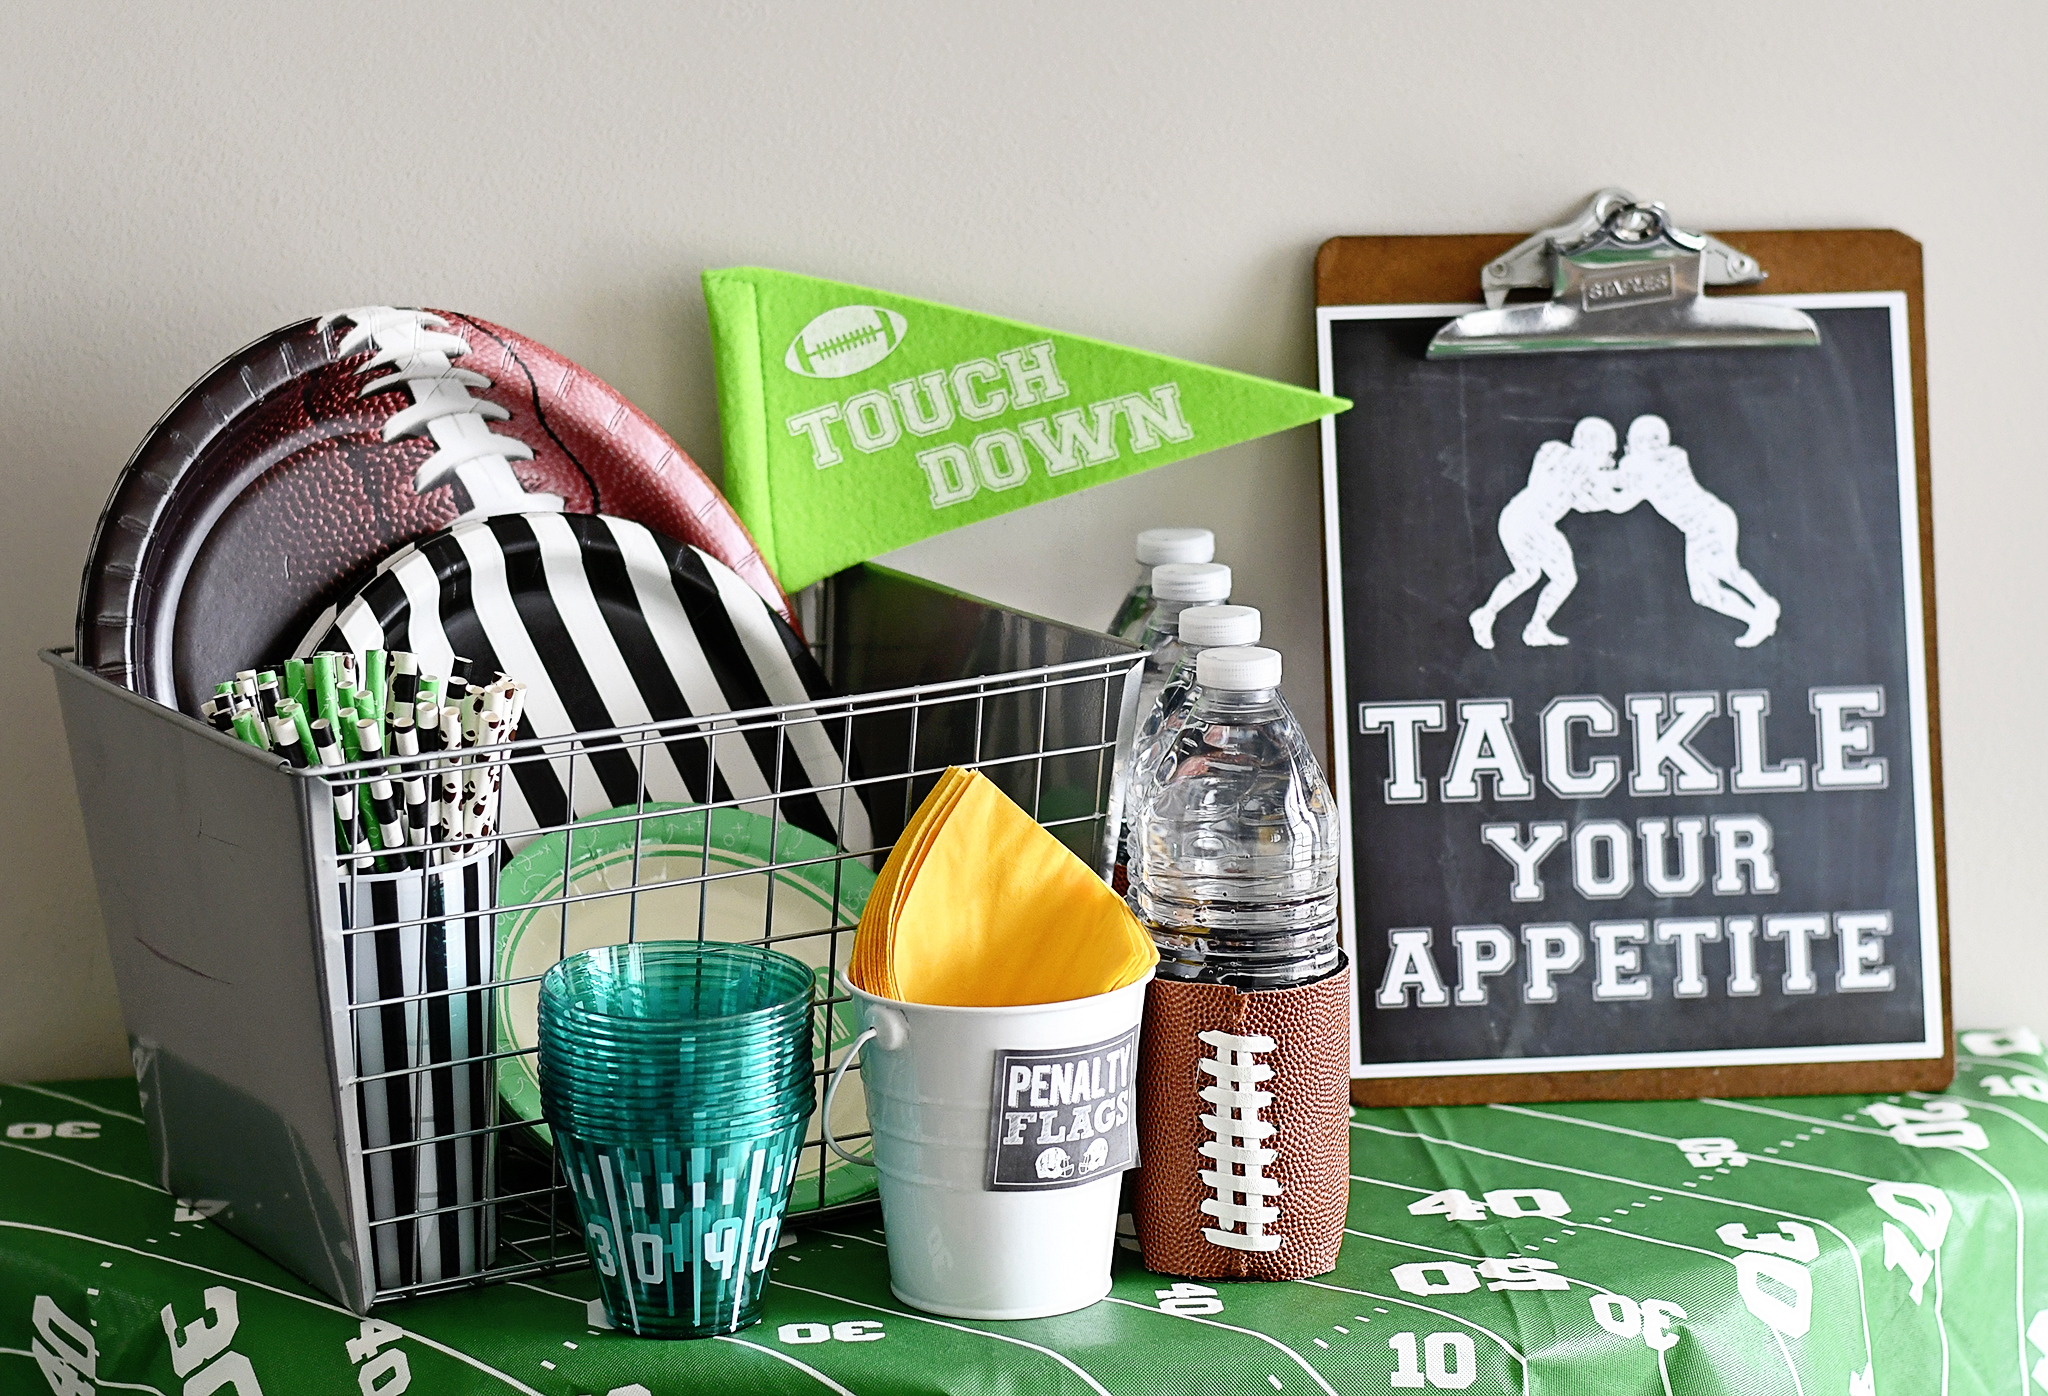 Tackle your Appetite on Game Day!